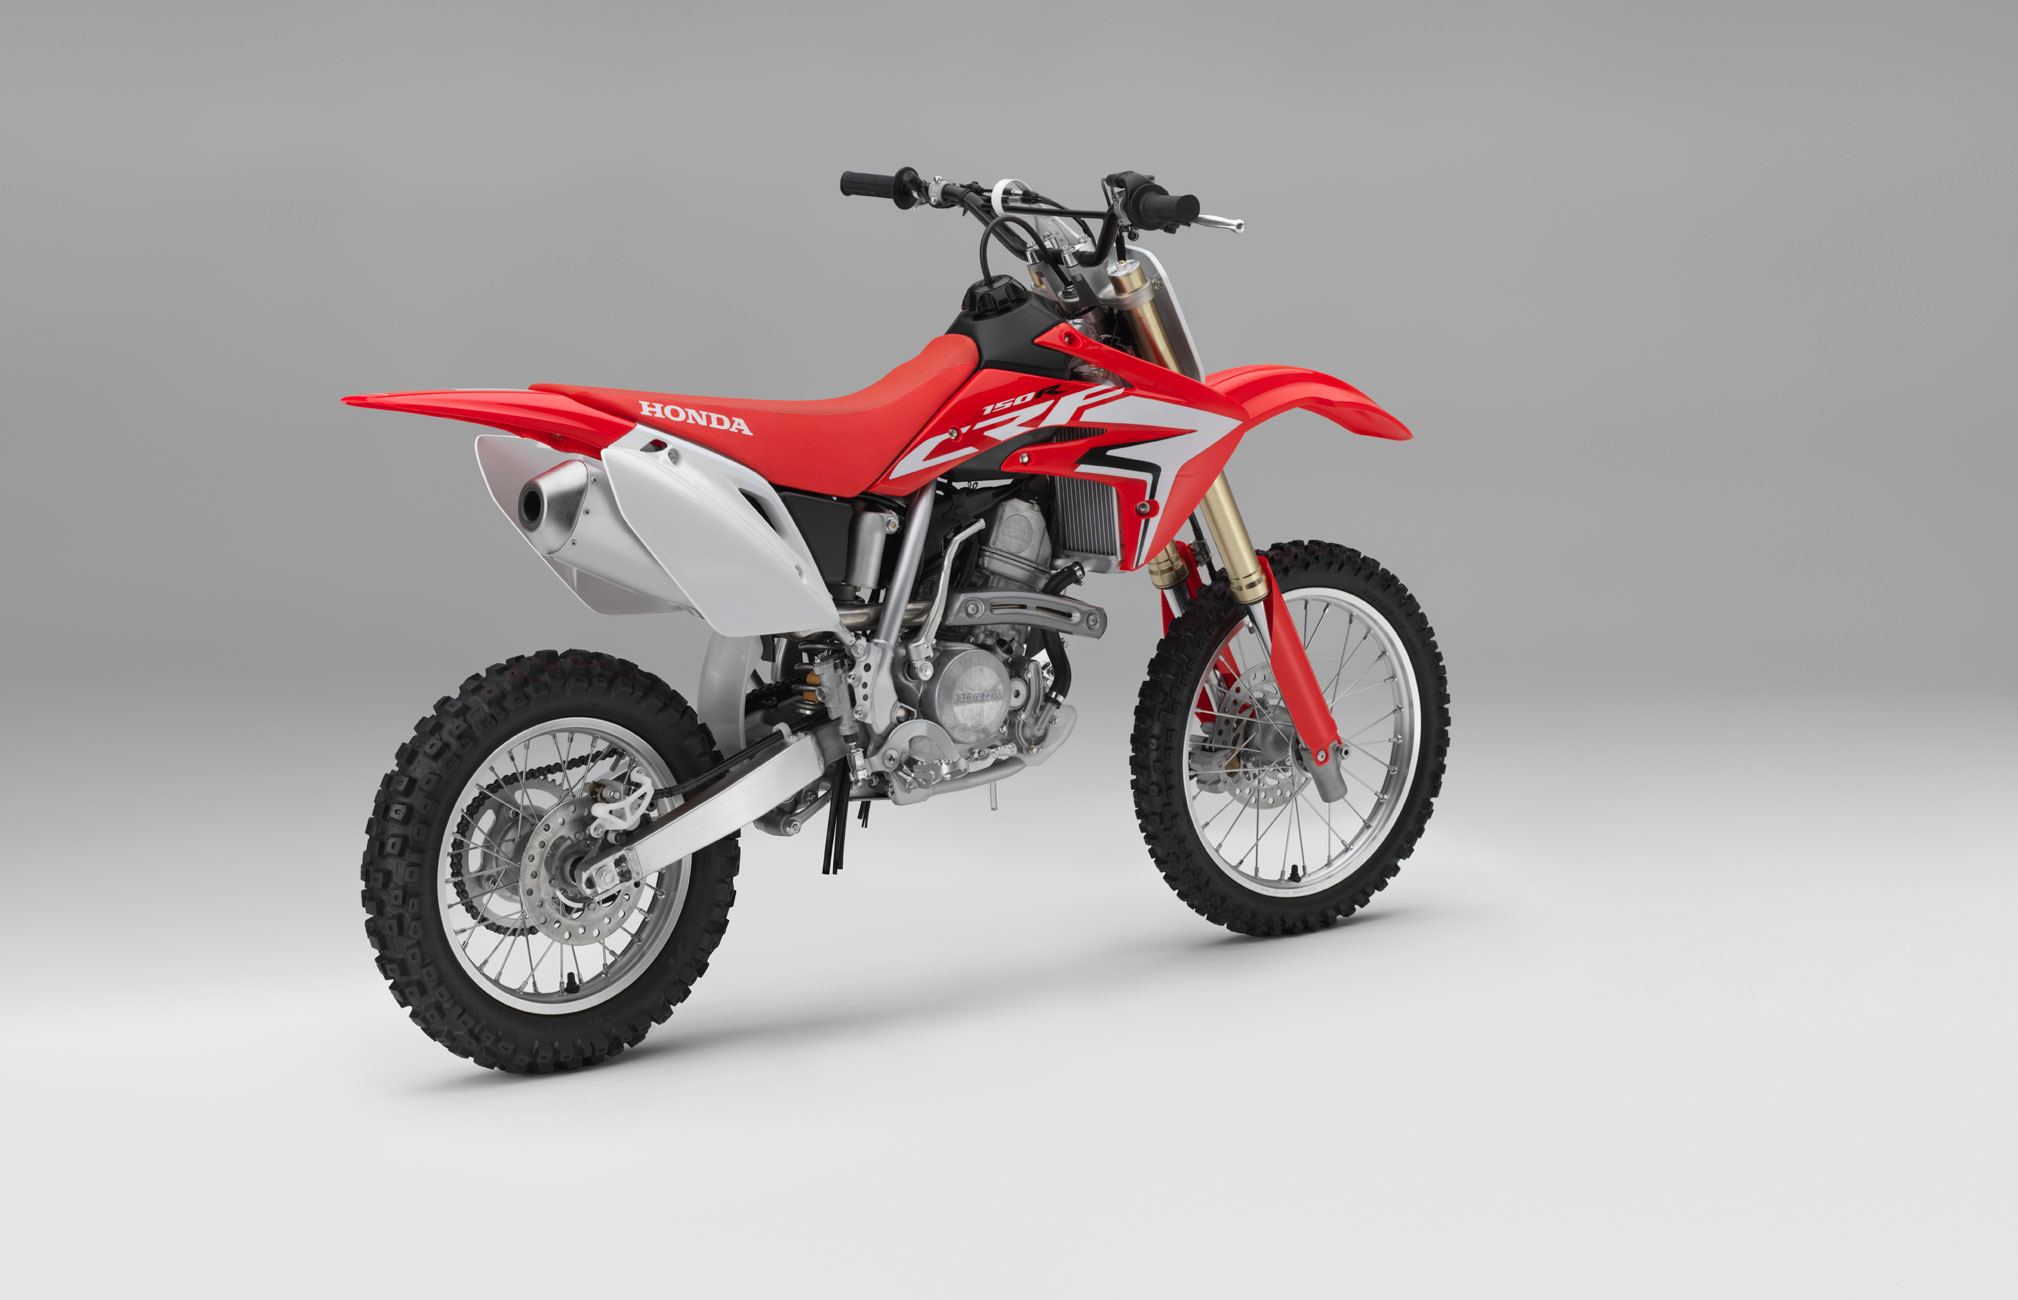 Wiring Diagram Honda Crf150r Honda Lower Unit Diagram Wiring Diagram Elsalvadorla